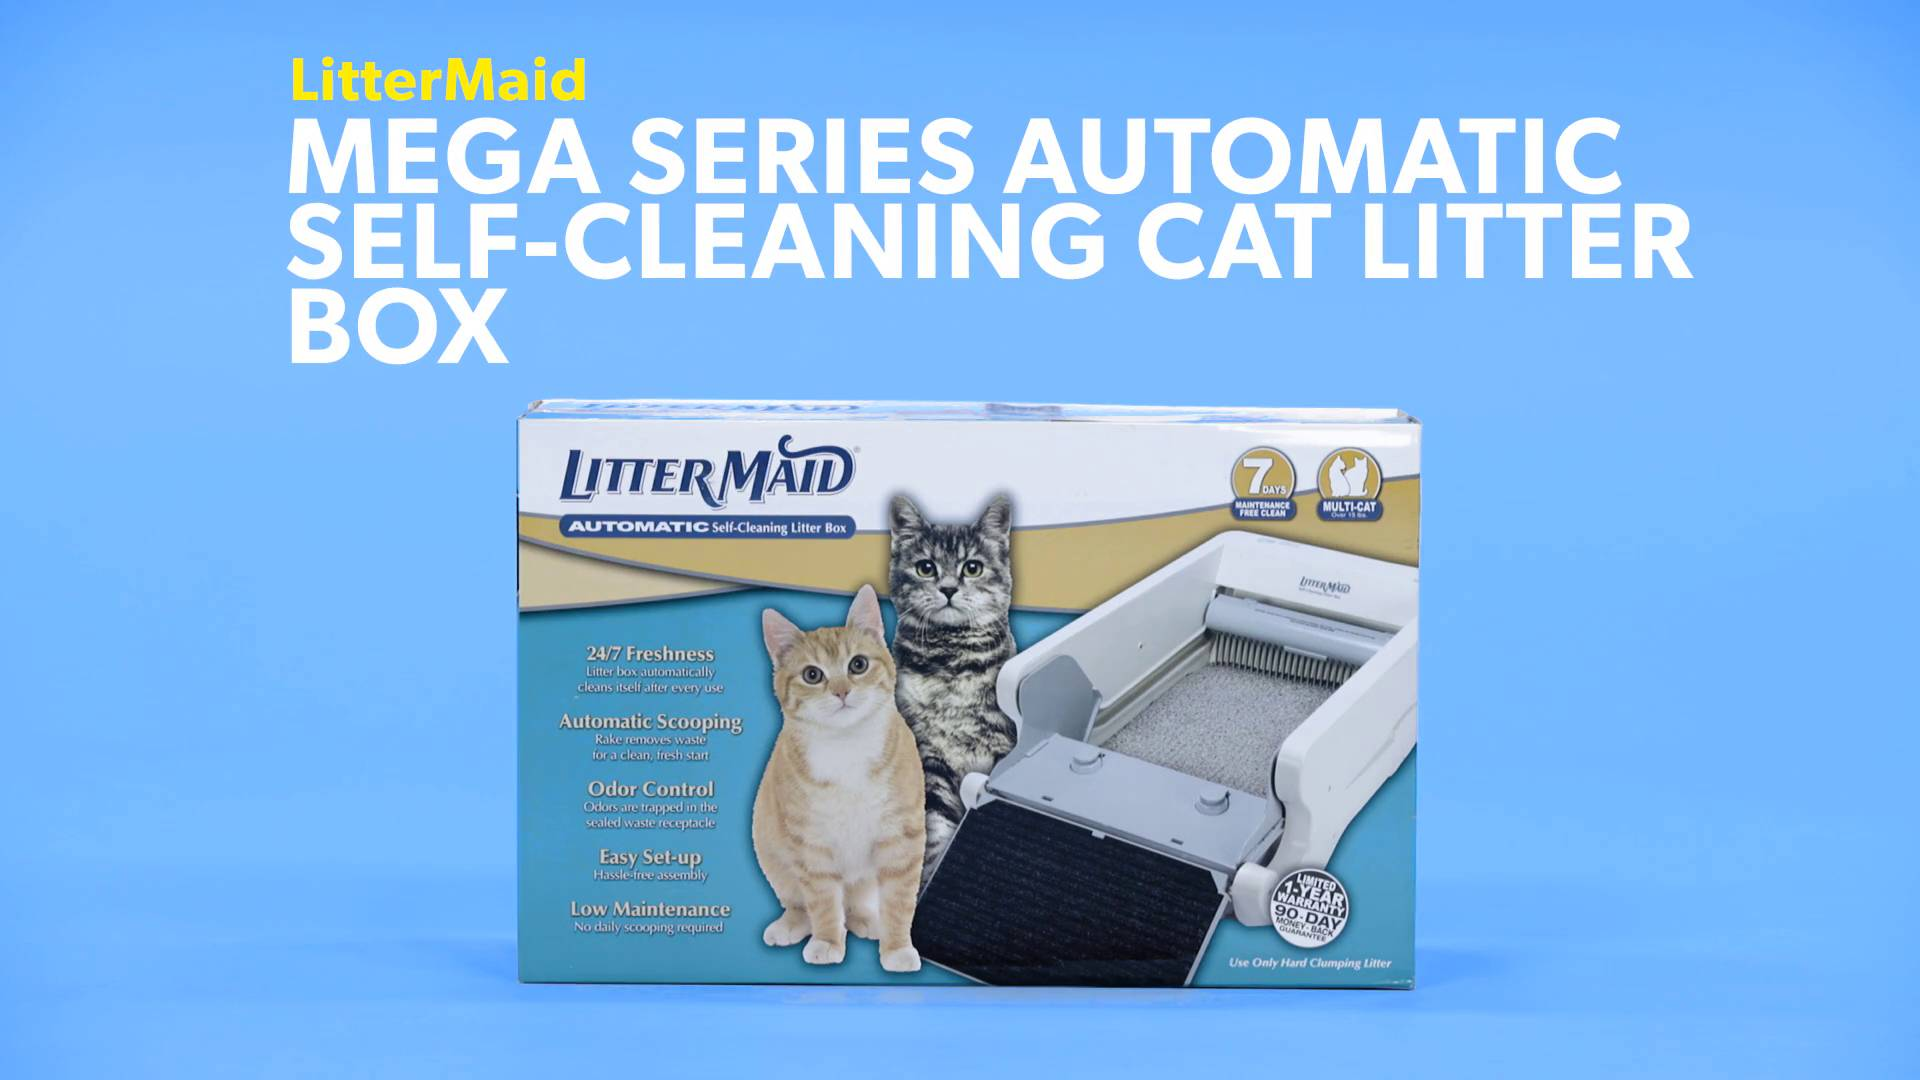 LitterMaid Mega Series Automatic Self-Cleaning Cat Litter Box - Chewy.com  sc 1 st  Chewy.com & LitterMaid Mega Series Automatic Self-Cleaning Cat Litter Box ... Aboutintivar.Com